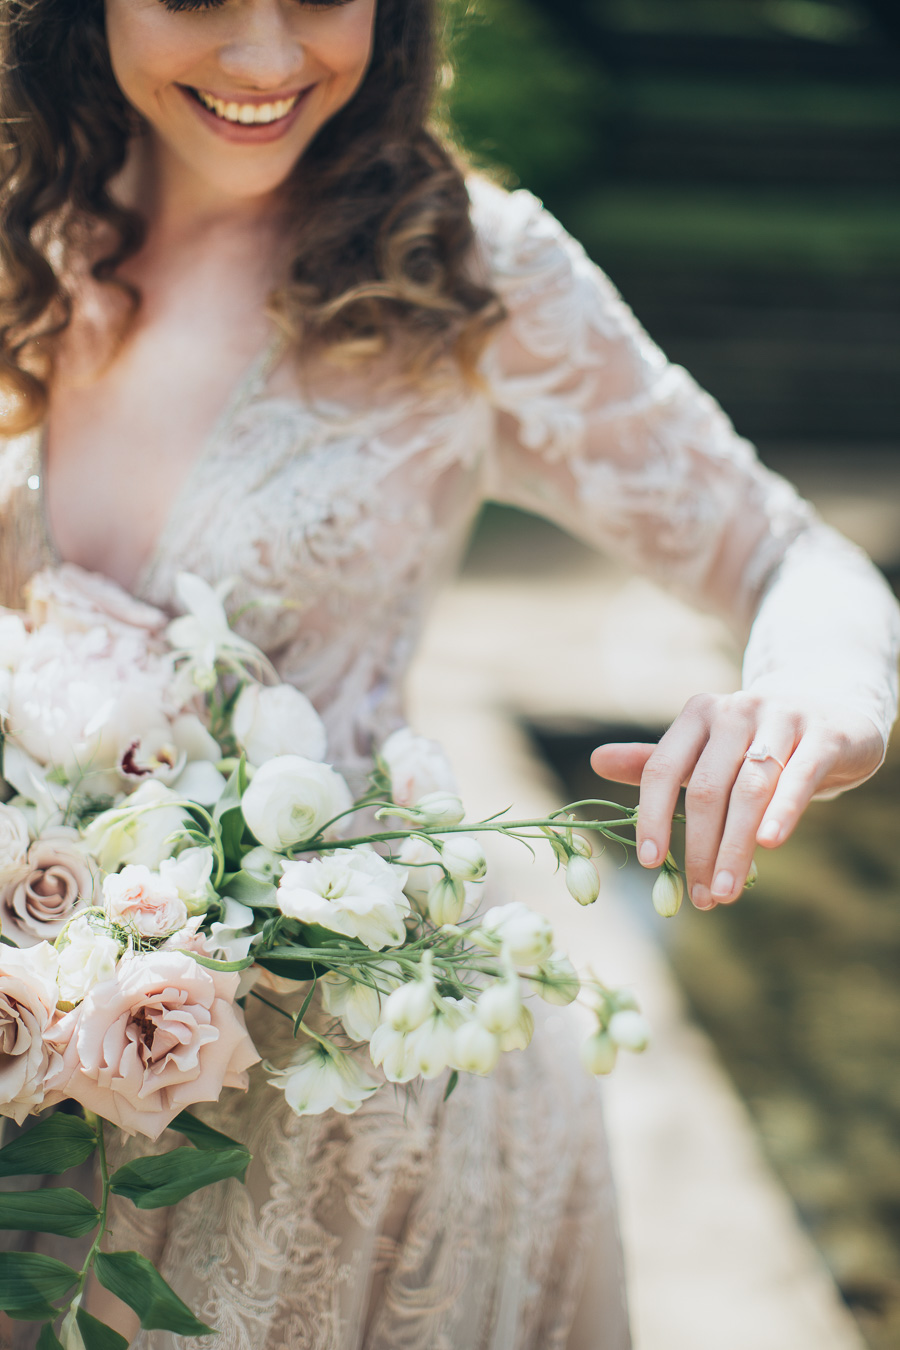 Belle Epoque wedding style inspiration with Wedhead, image credit Elina Sazonova Photography (8)